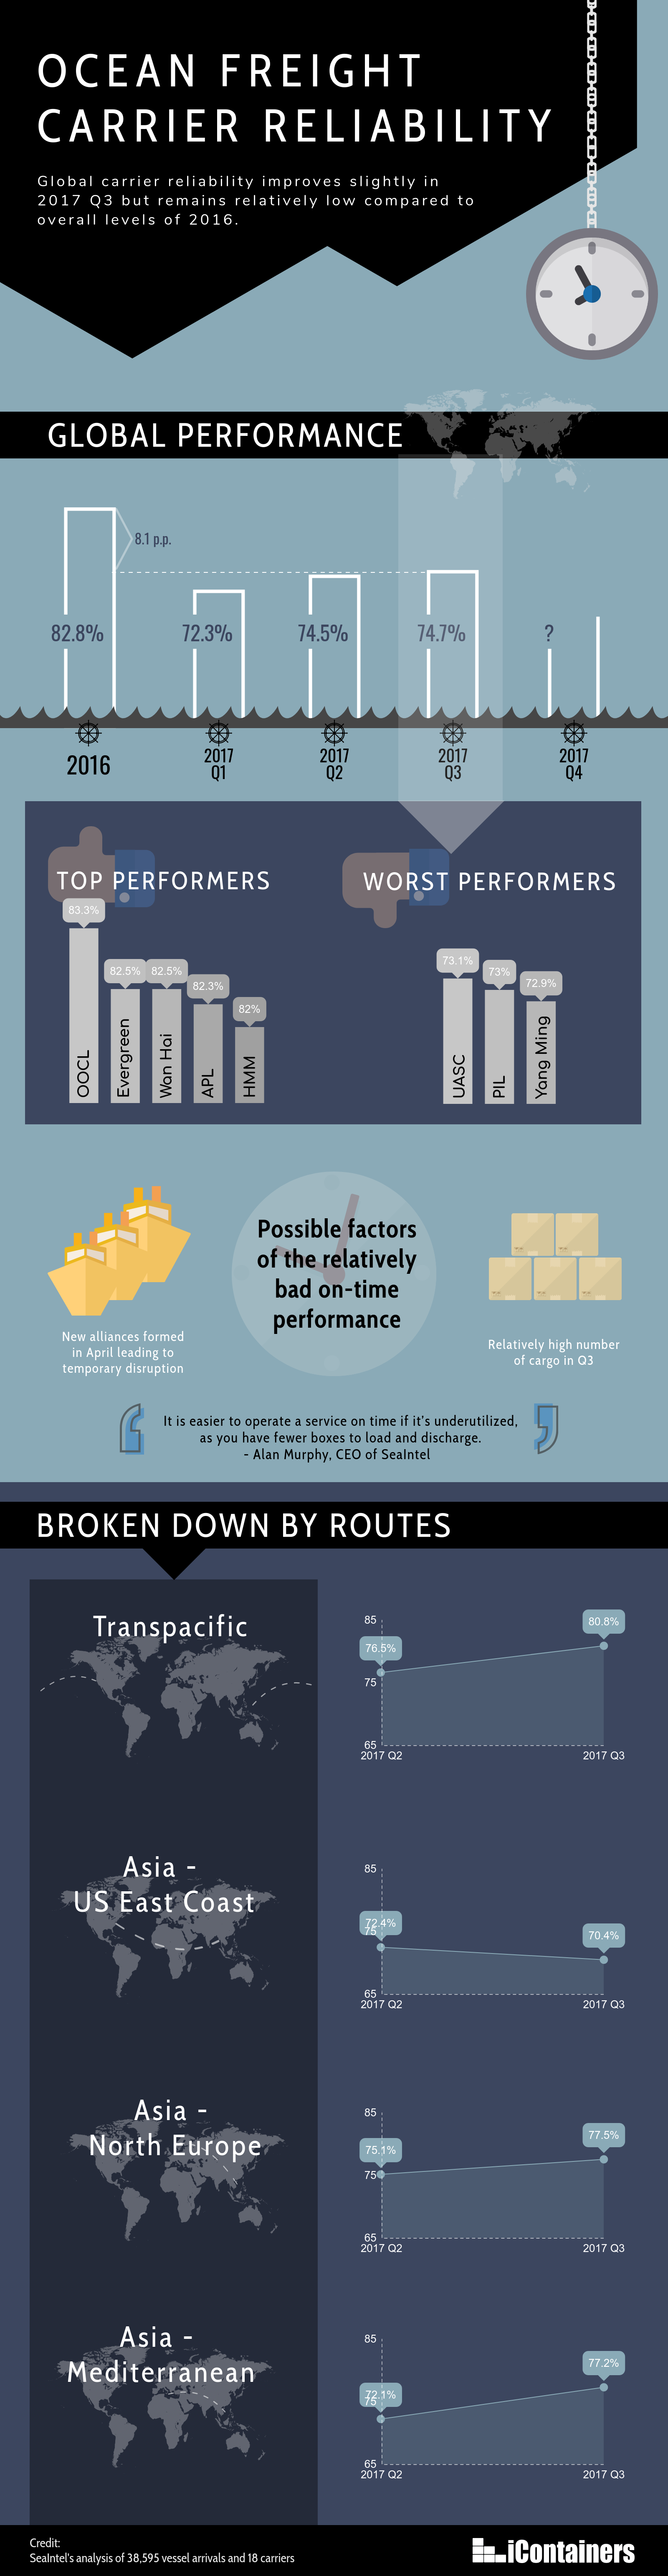 carrier-schedule-reliability-infographic